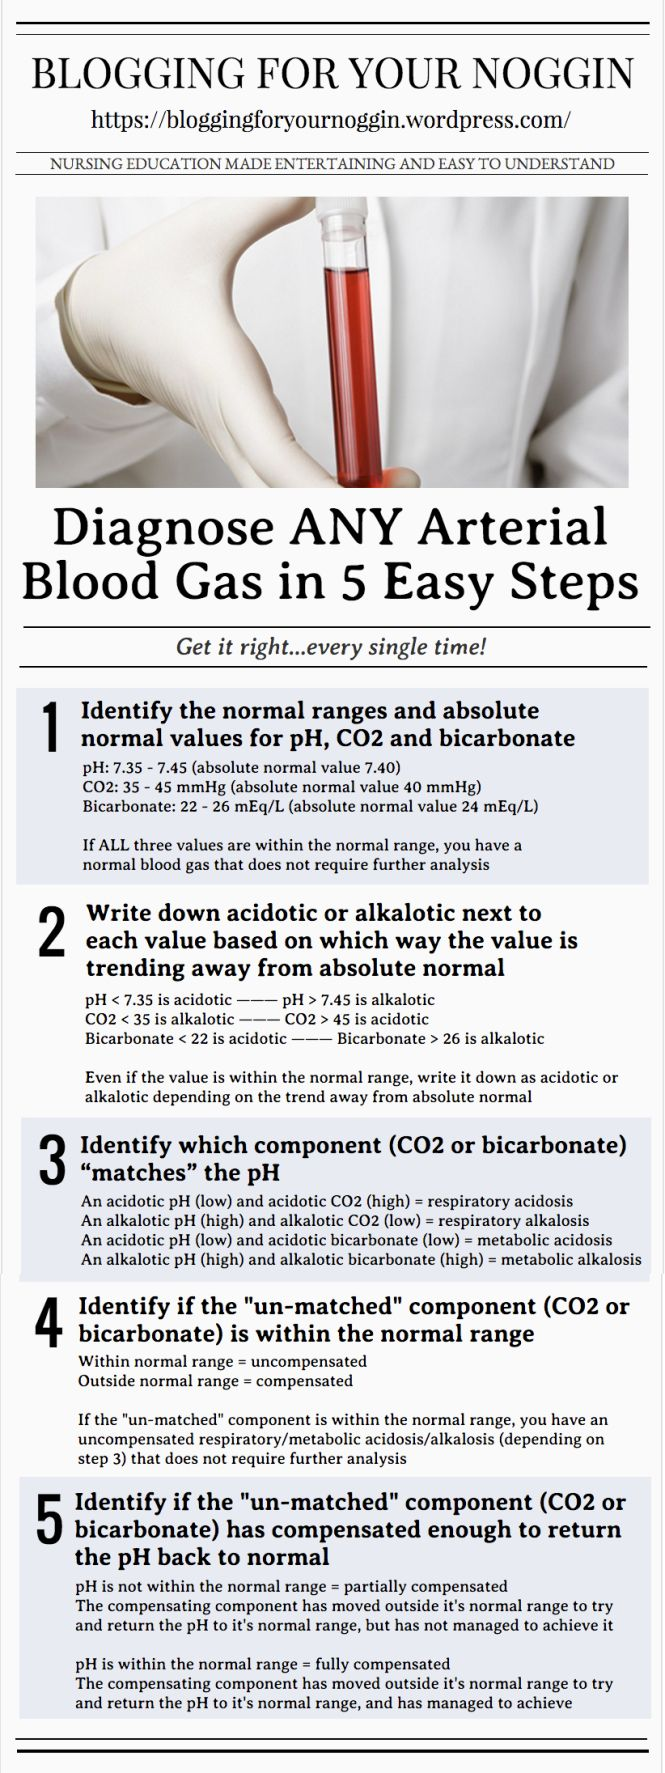 Diagnose ALL arterial blood gases (ABG) in 5 easy steps and get it right, every single time! Nursing made easy!